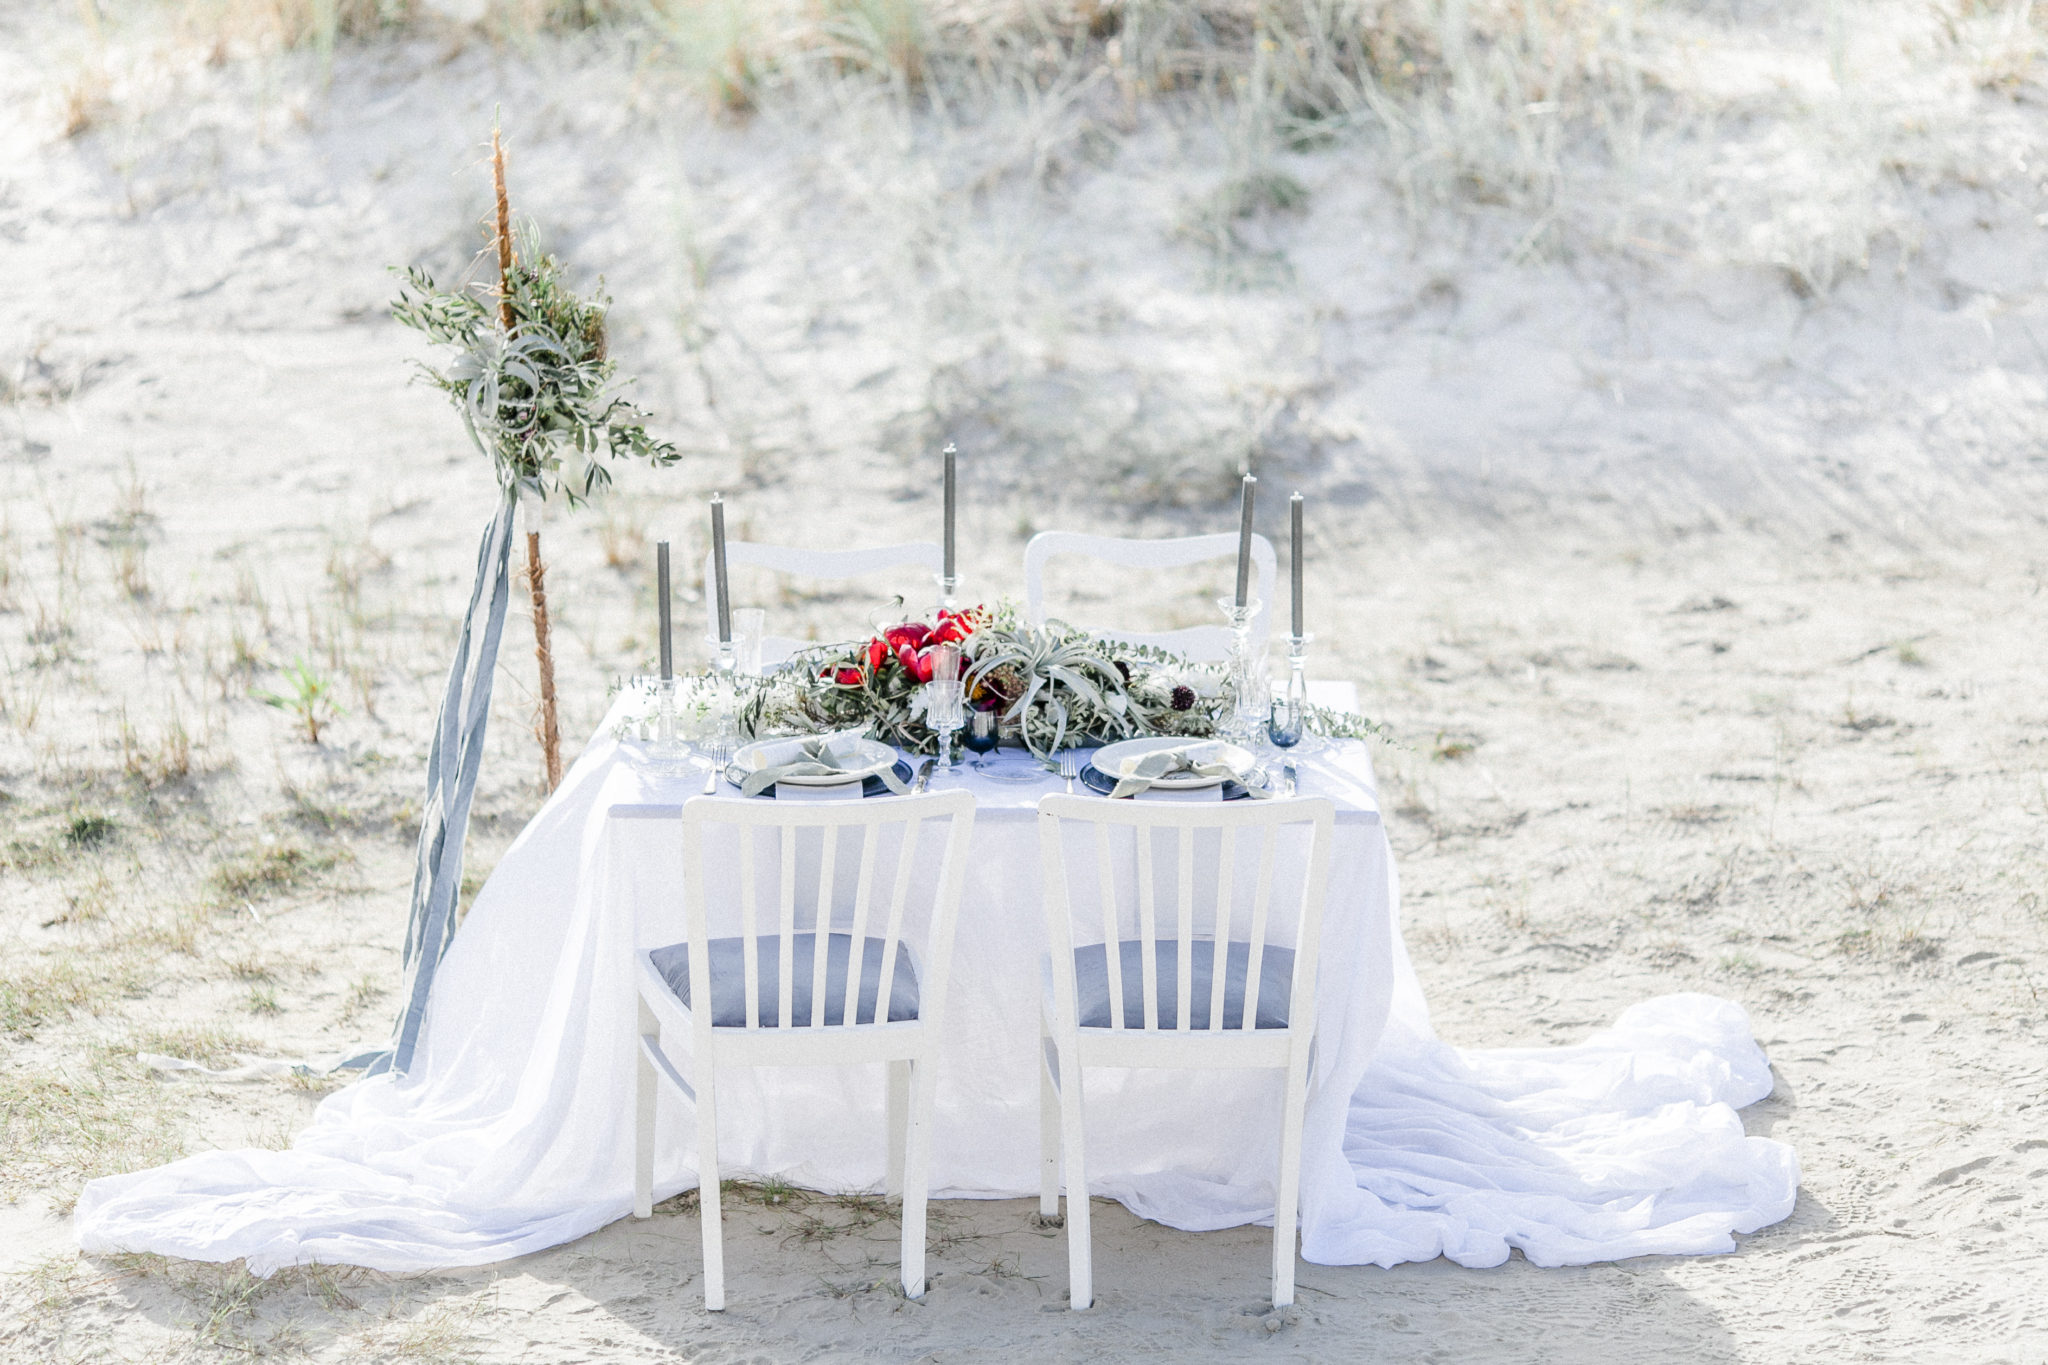 Fine art wedding table